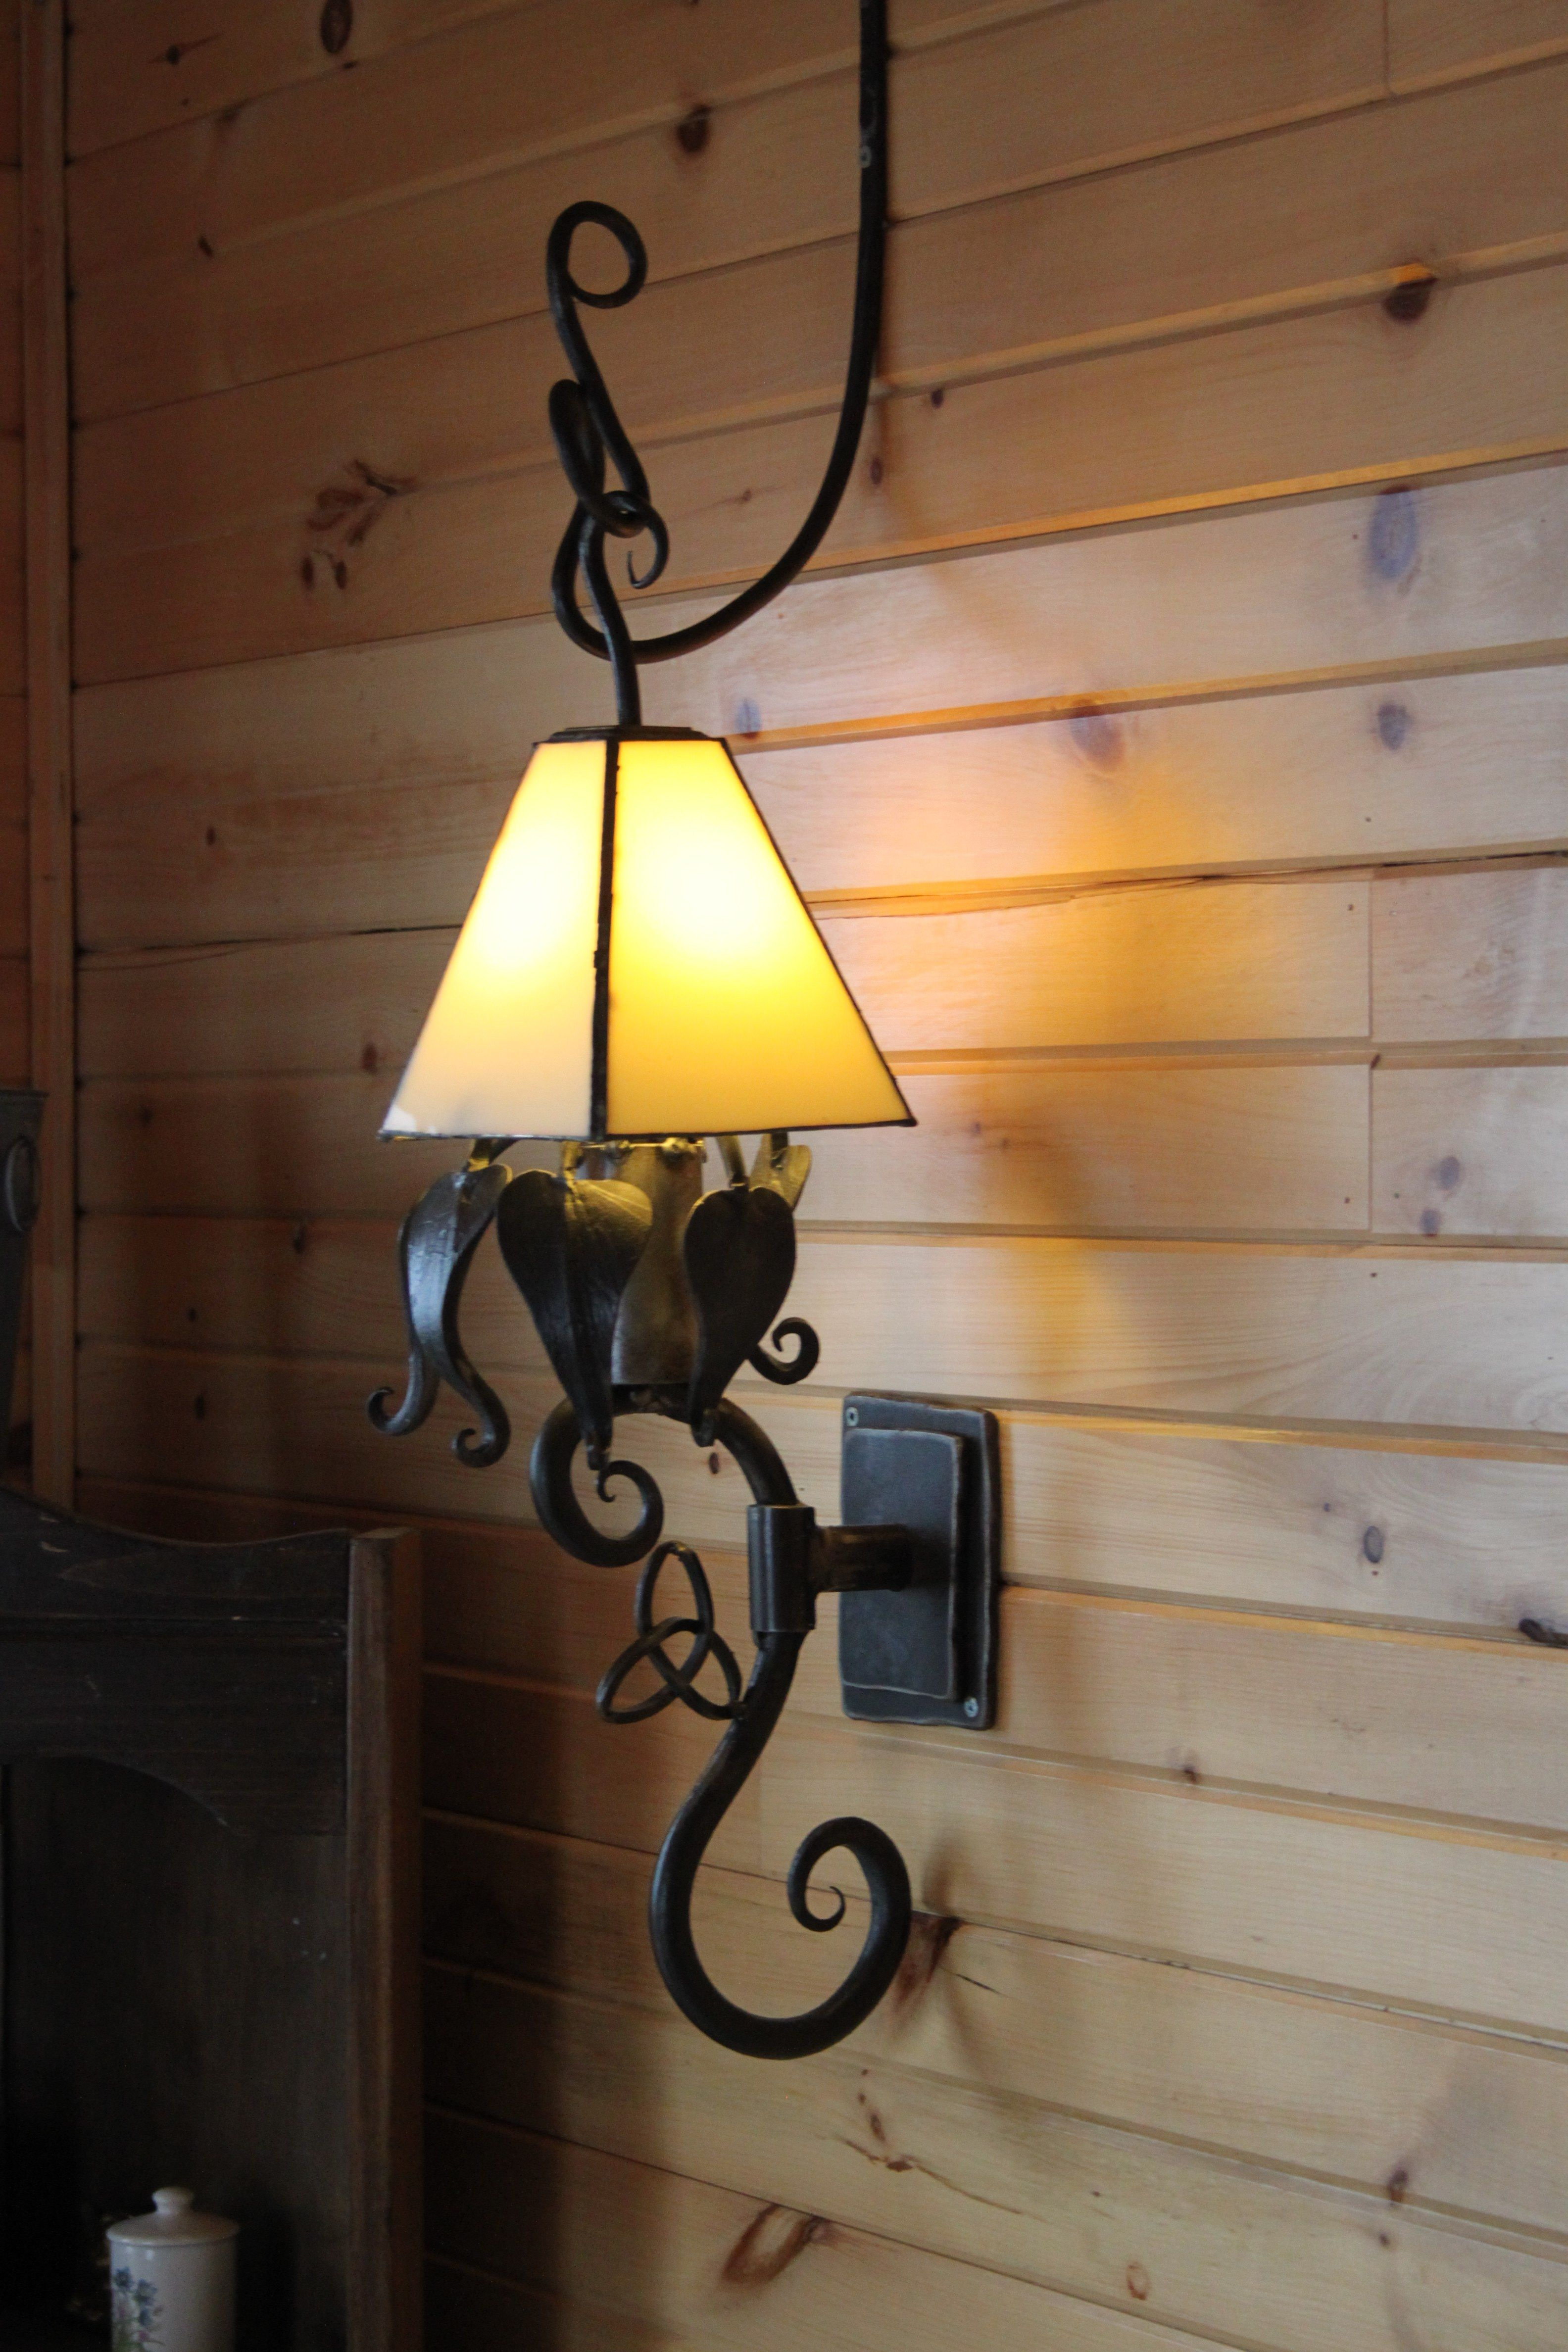 Electric Wrought Iron Wall Sconce Stained Glass Floating Shade Iron Wall Sconces Wall Sconces Iron Wall